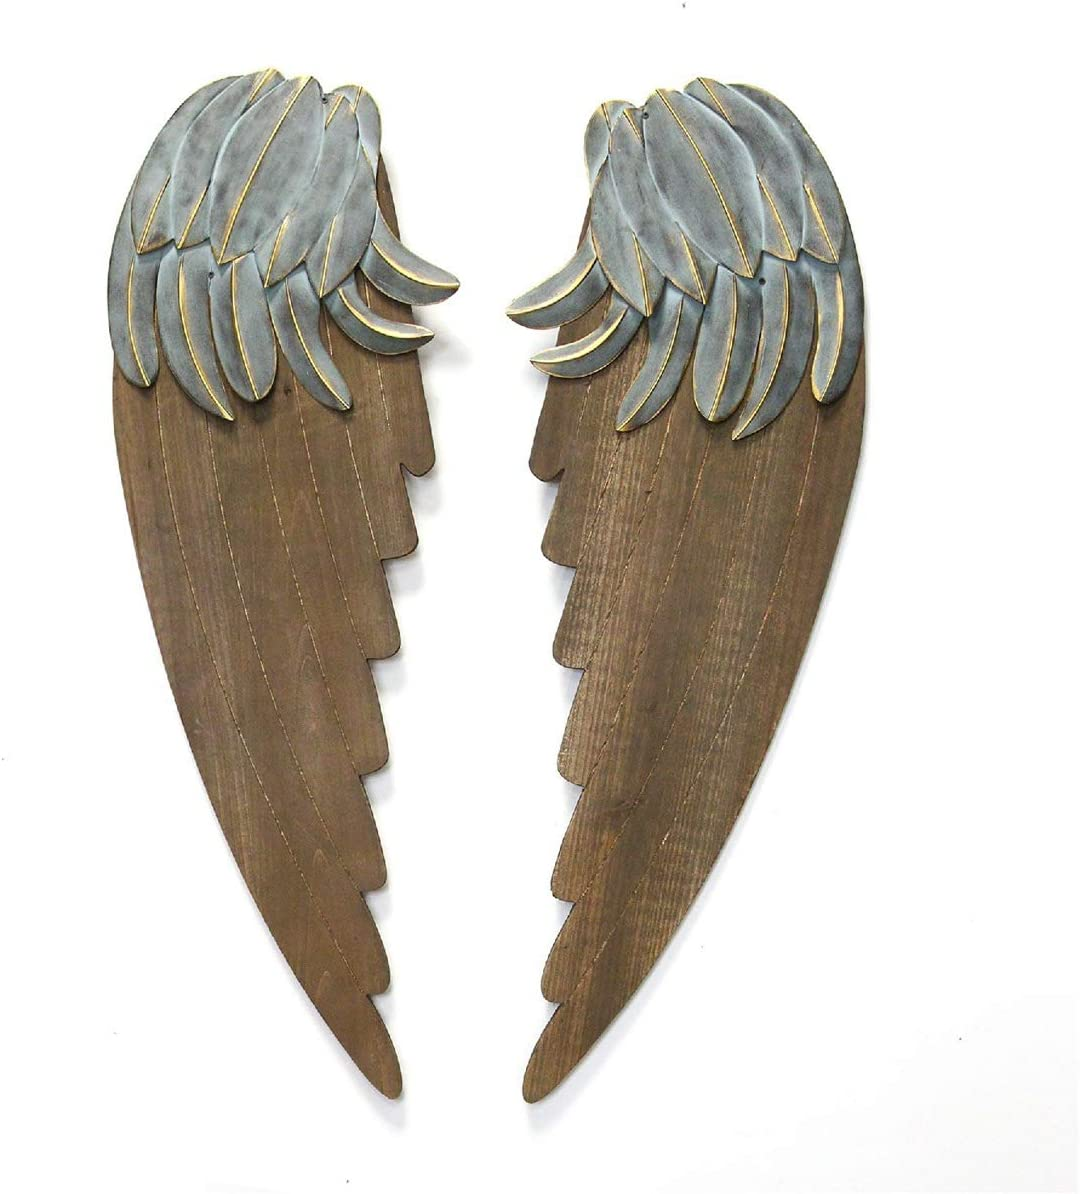 "Stratton Home Décor Stratton Home Decor Rustic Angel Wings, 10.50"" W X 1.25"" D X 30.25"" H, Dark Walnut, Blue, Gold"